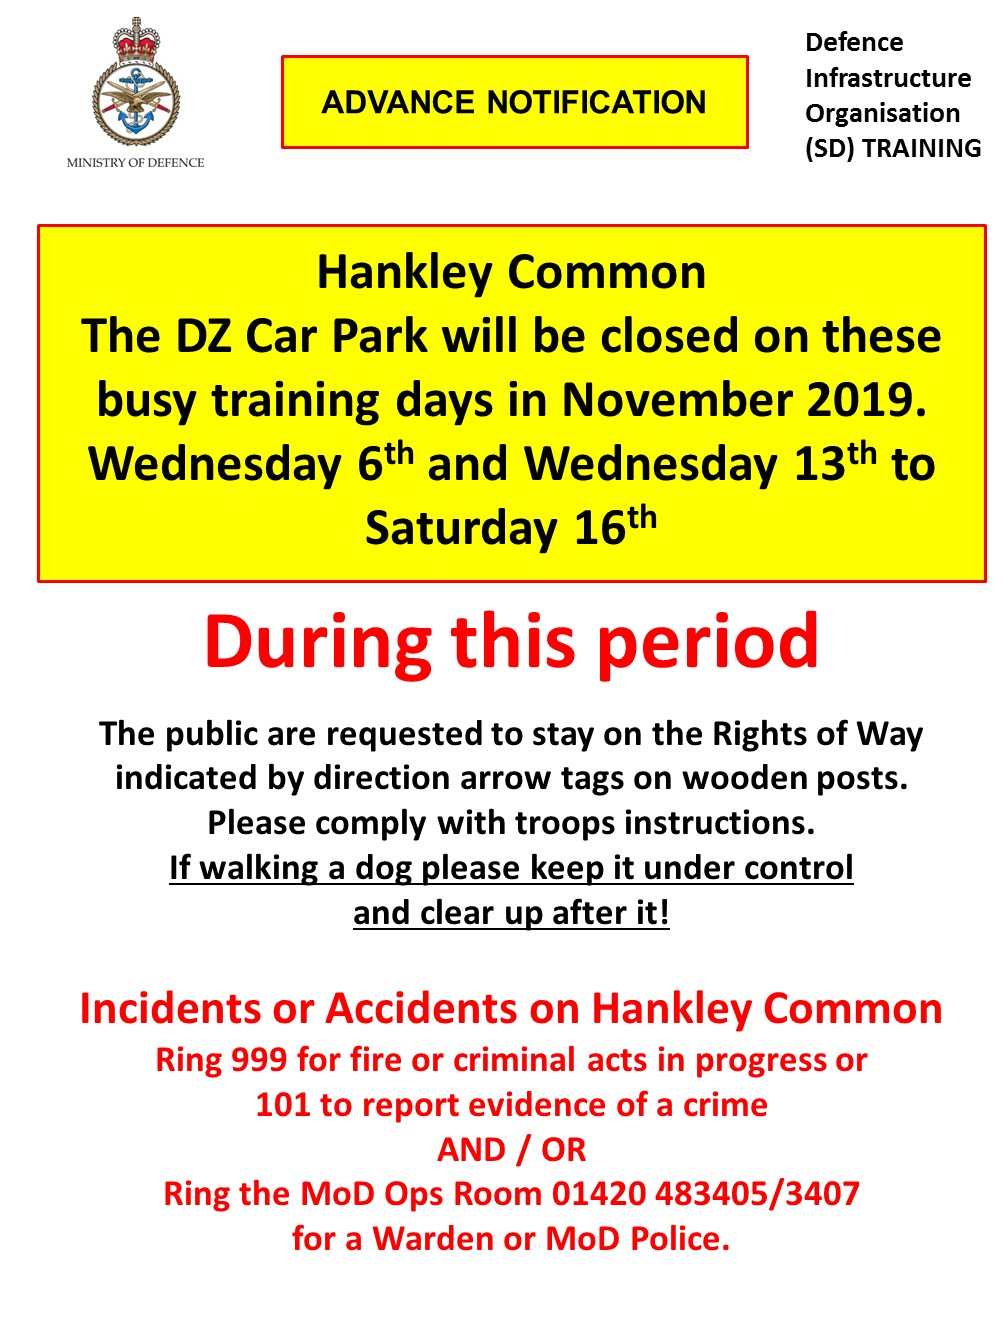 Hankley Common Car Park November Closure Dates